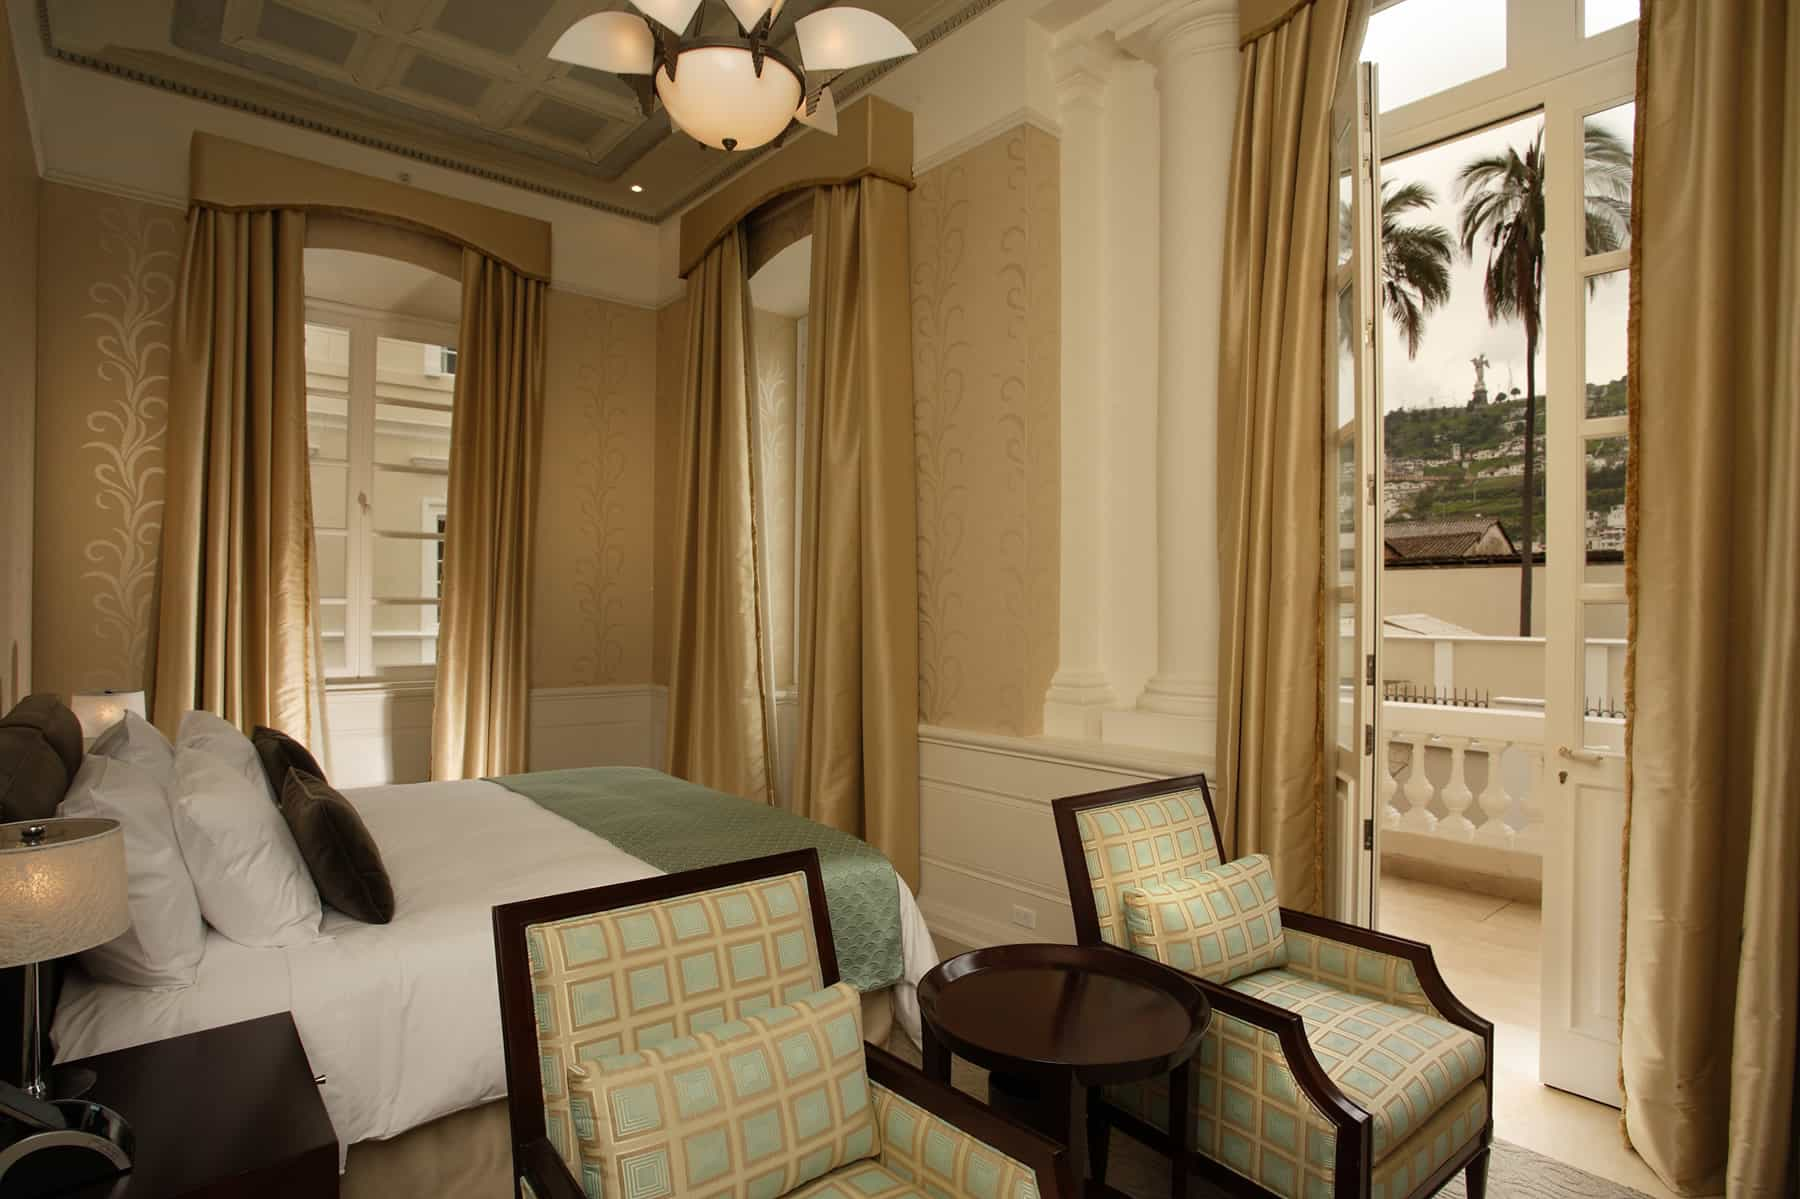 rooms - casa-gangotena-rooms-balcony-junior-suite-view.jpg